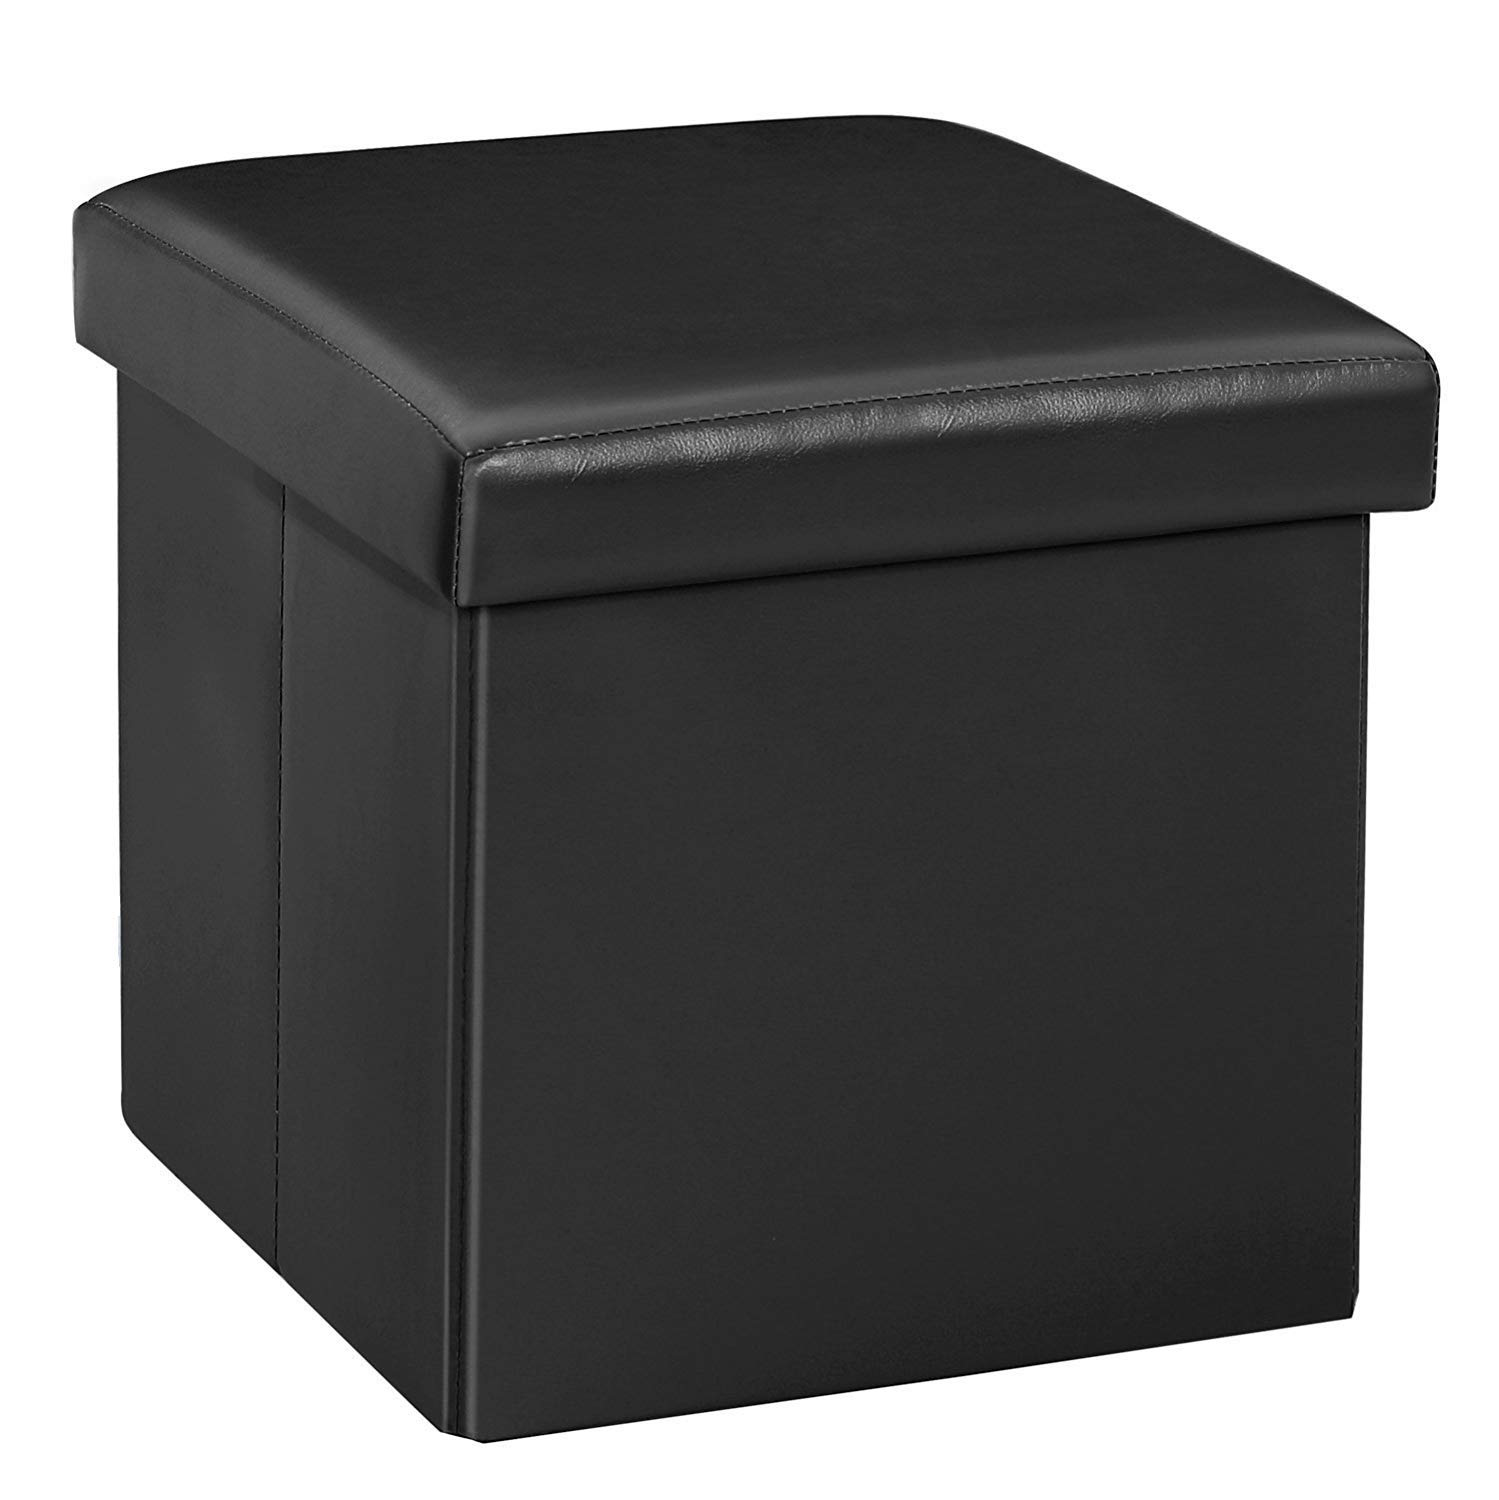 WoneNice Ottoman with Storage, Cube Storage Ottoman Folding Foot Stool, Foot Rest Seat, Clutter Toys Collection,11.8''X11.8'' X11.8'' (Black)